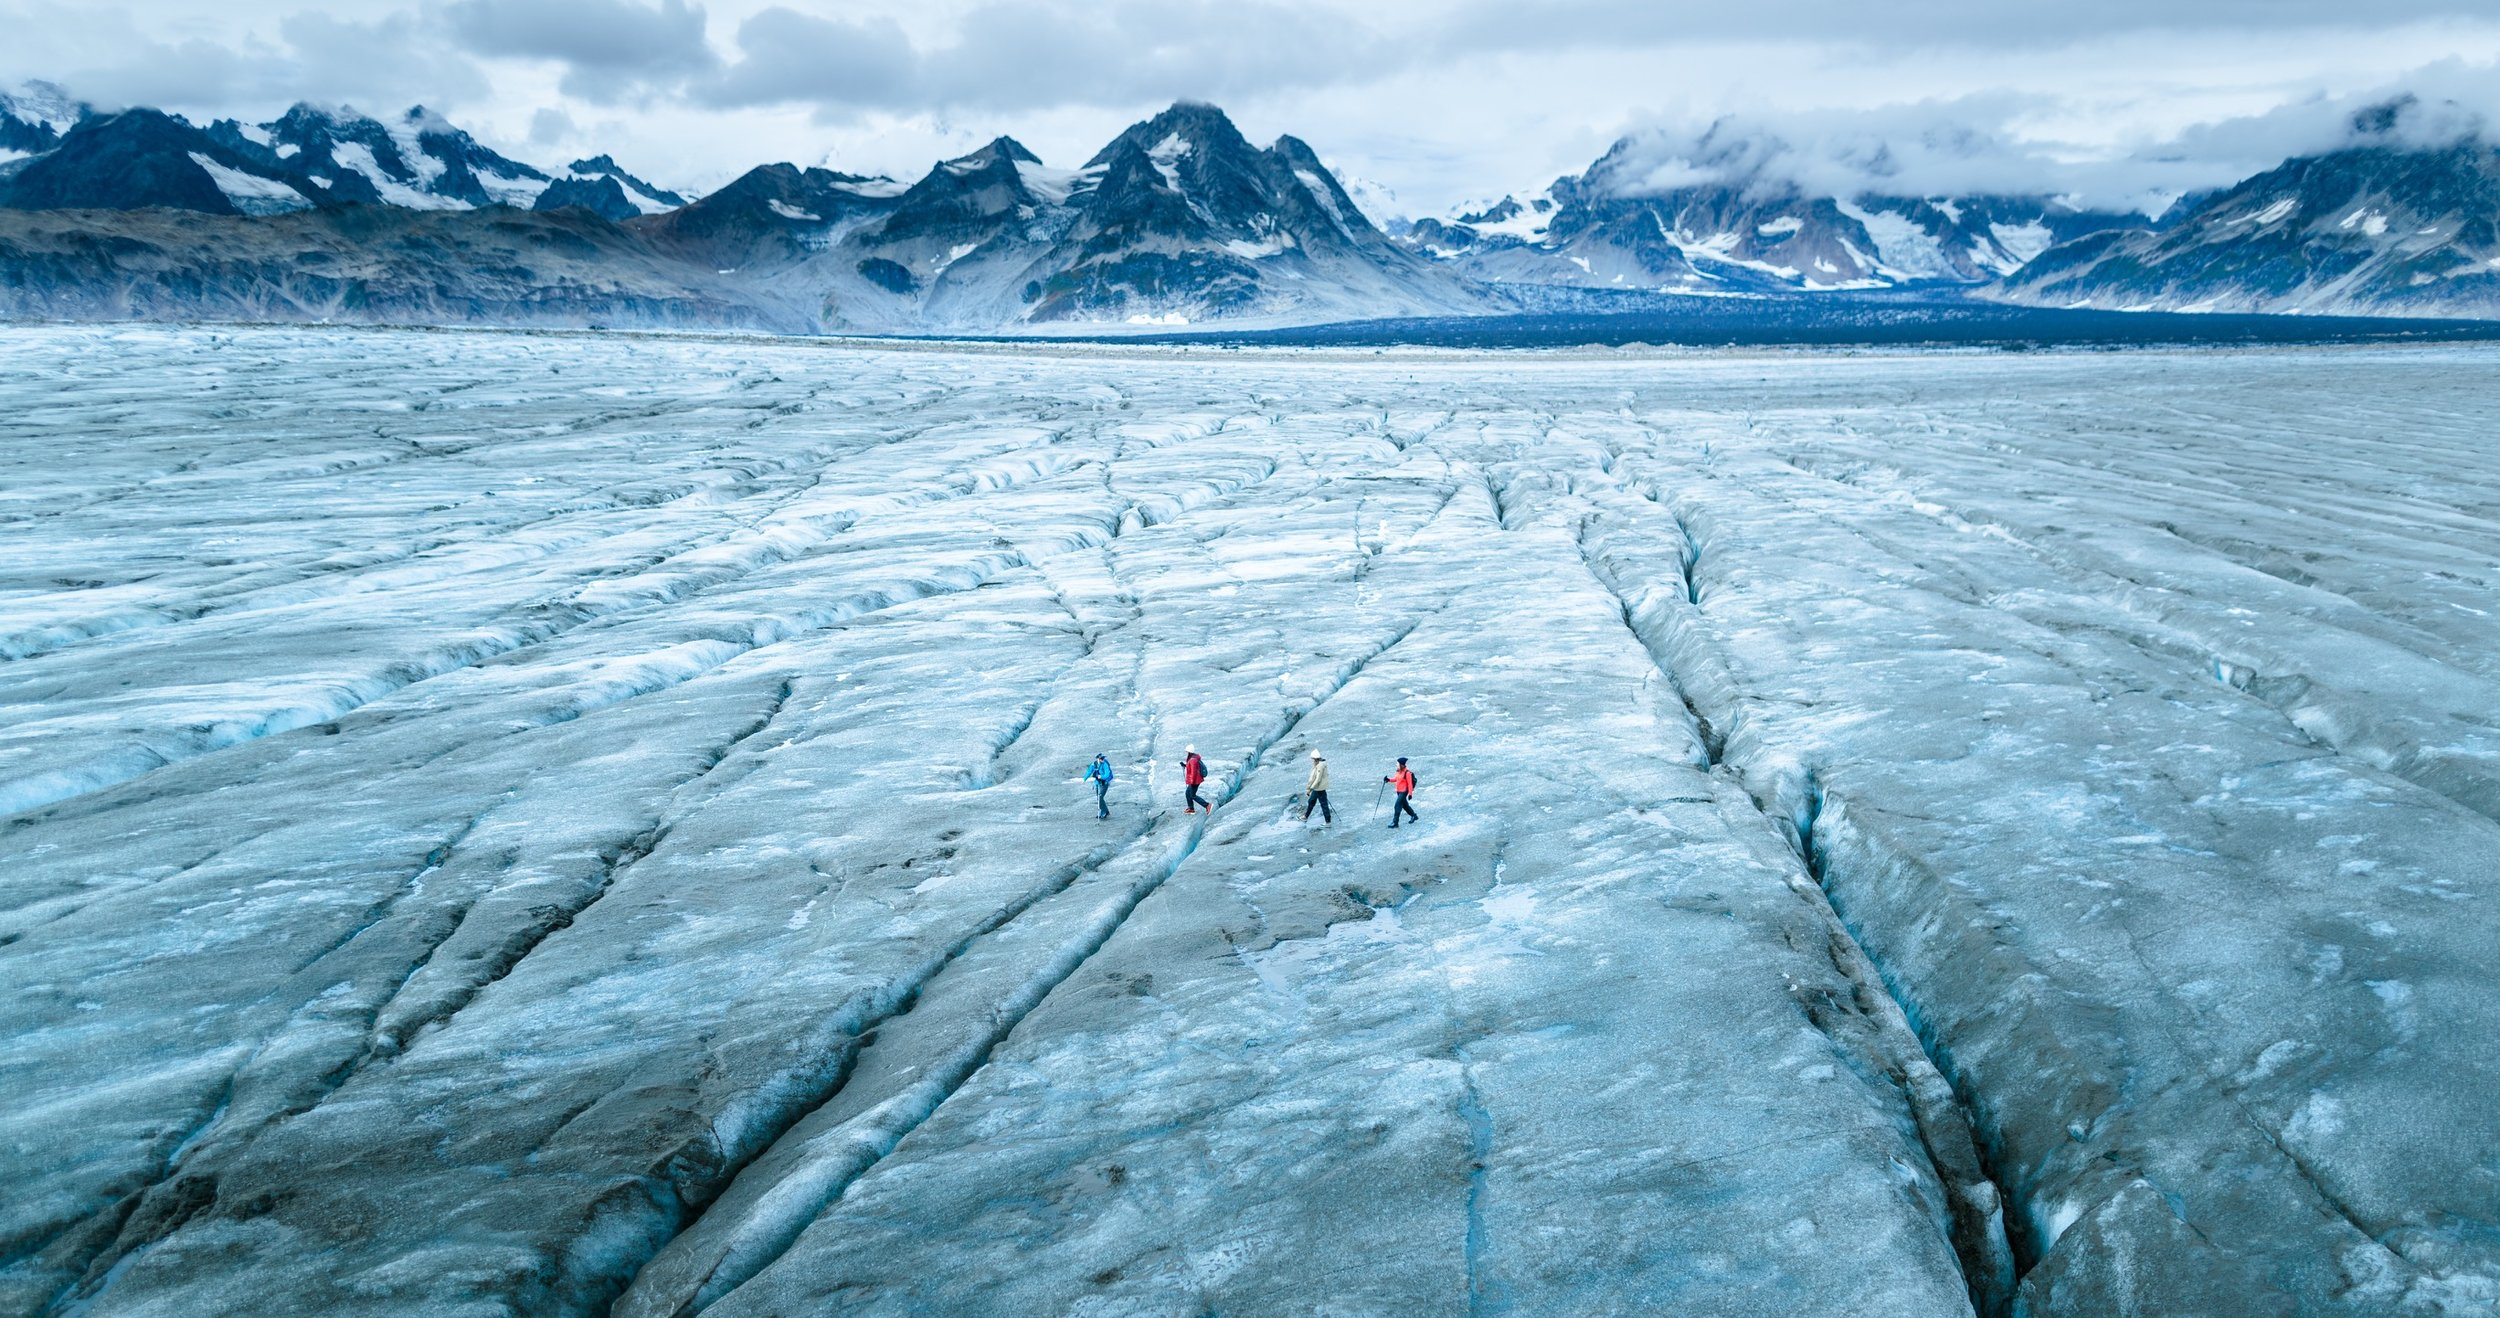 glacier trekking in alaska with eddie bauer